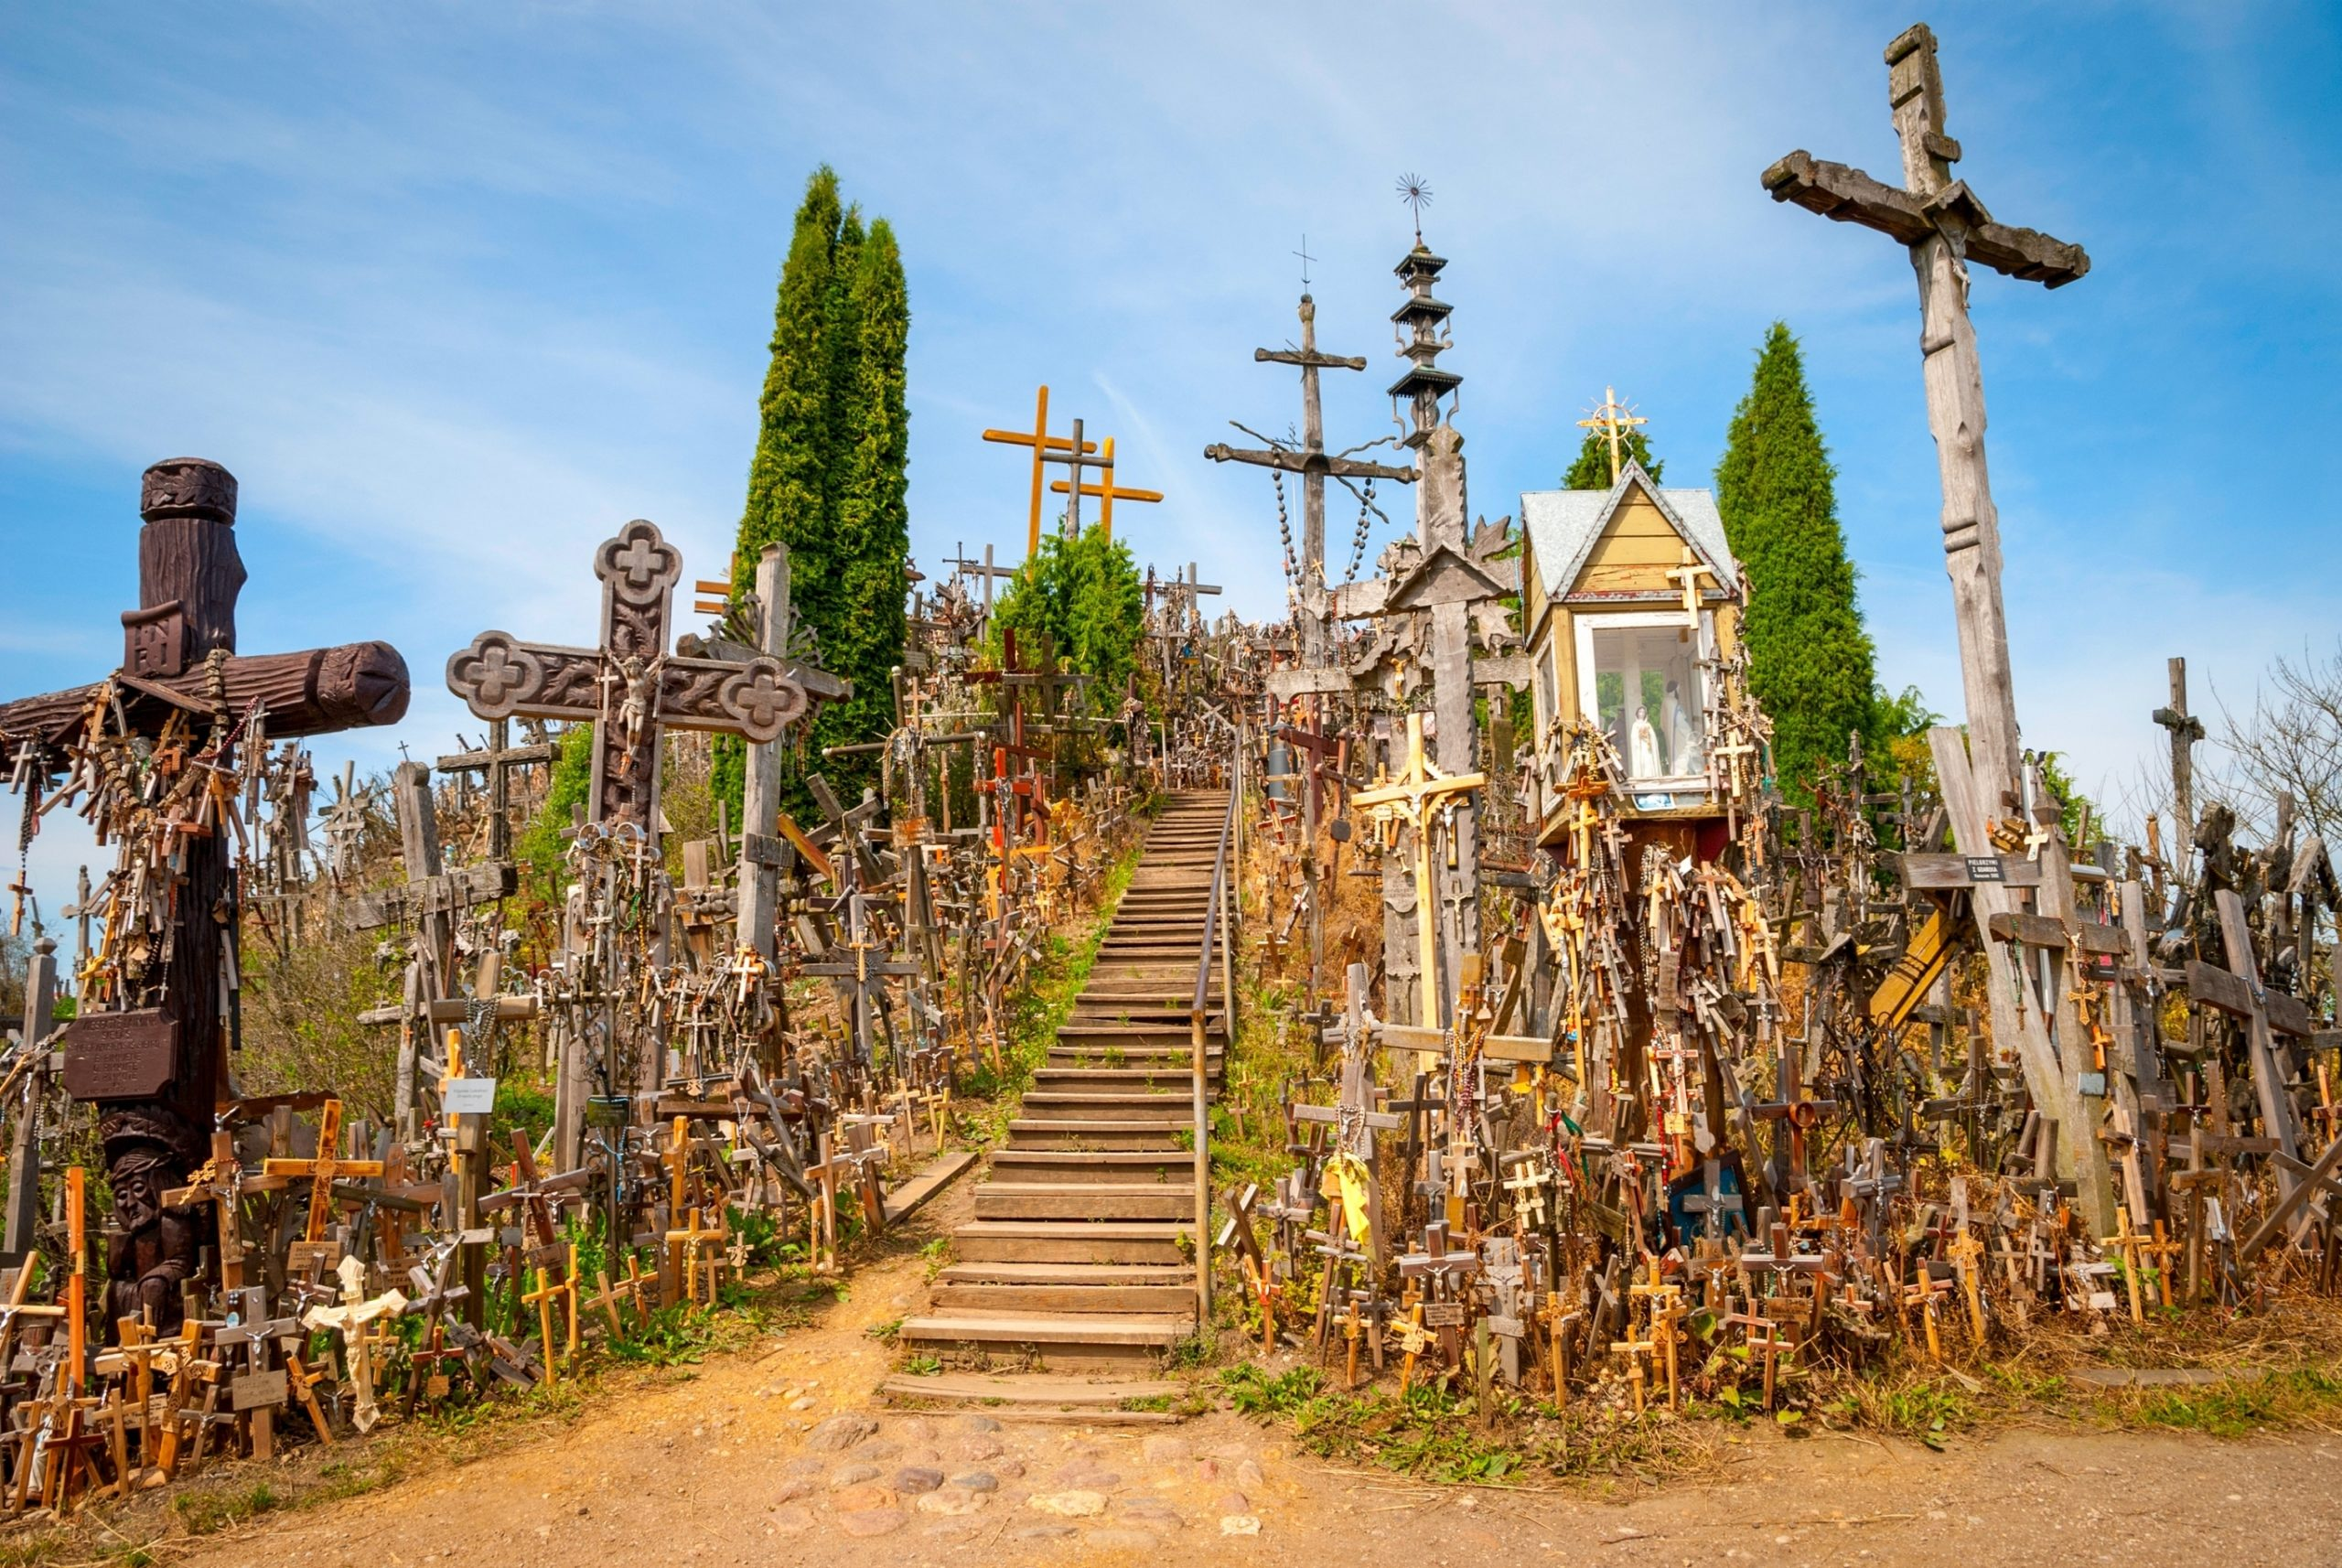 Hill of Crosses, Lithuania. From Shutterstock - By Ana Flasker